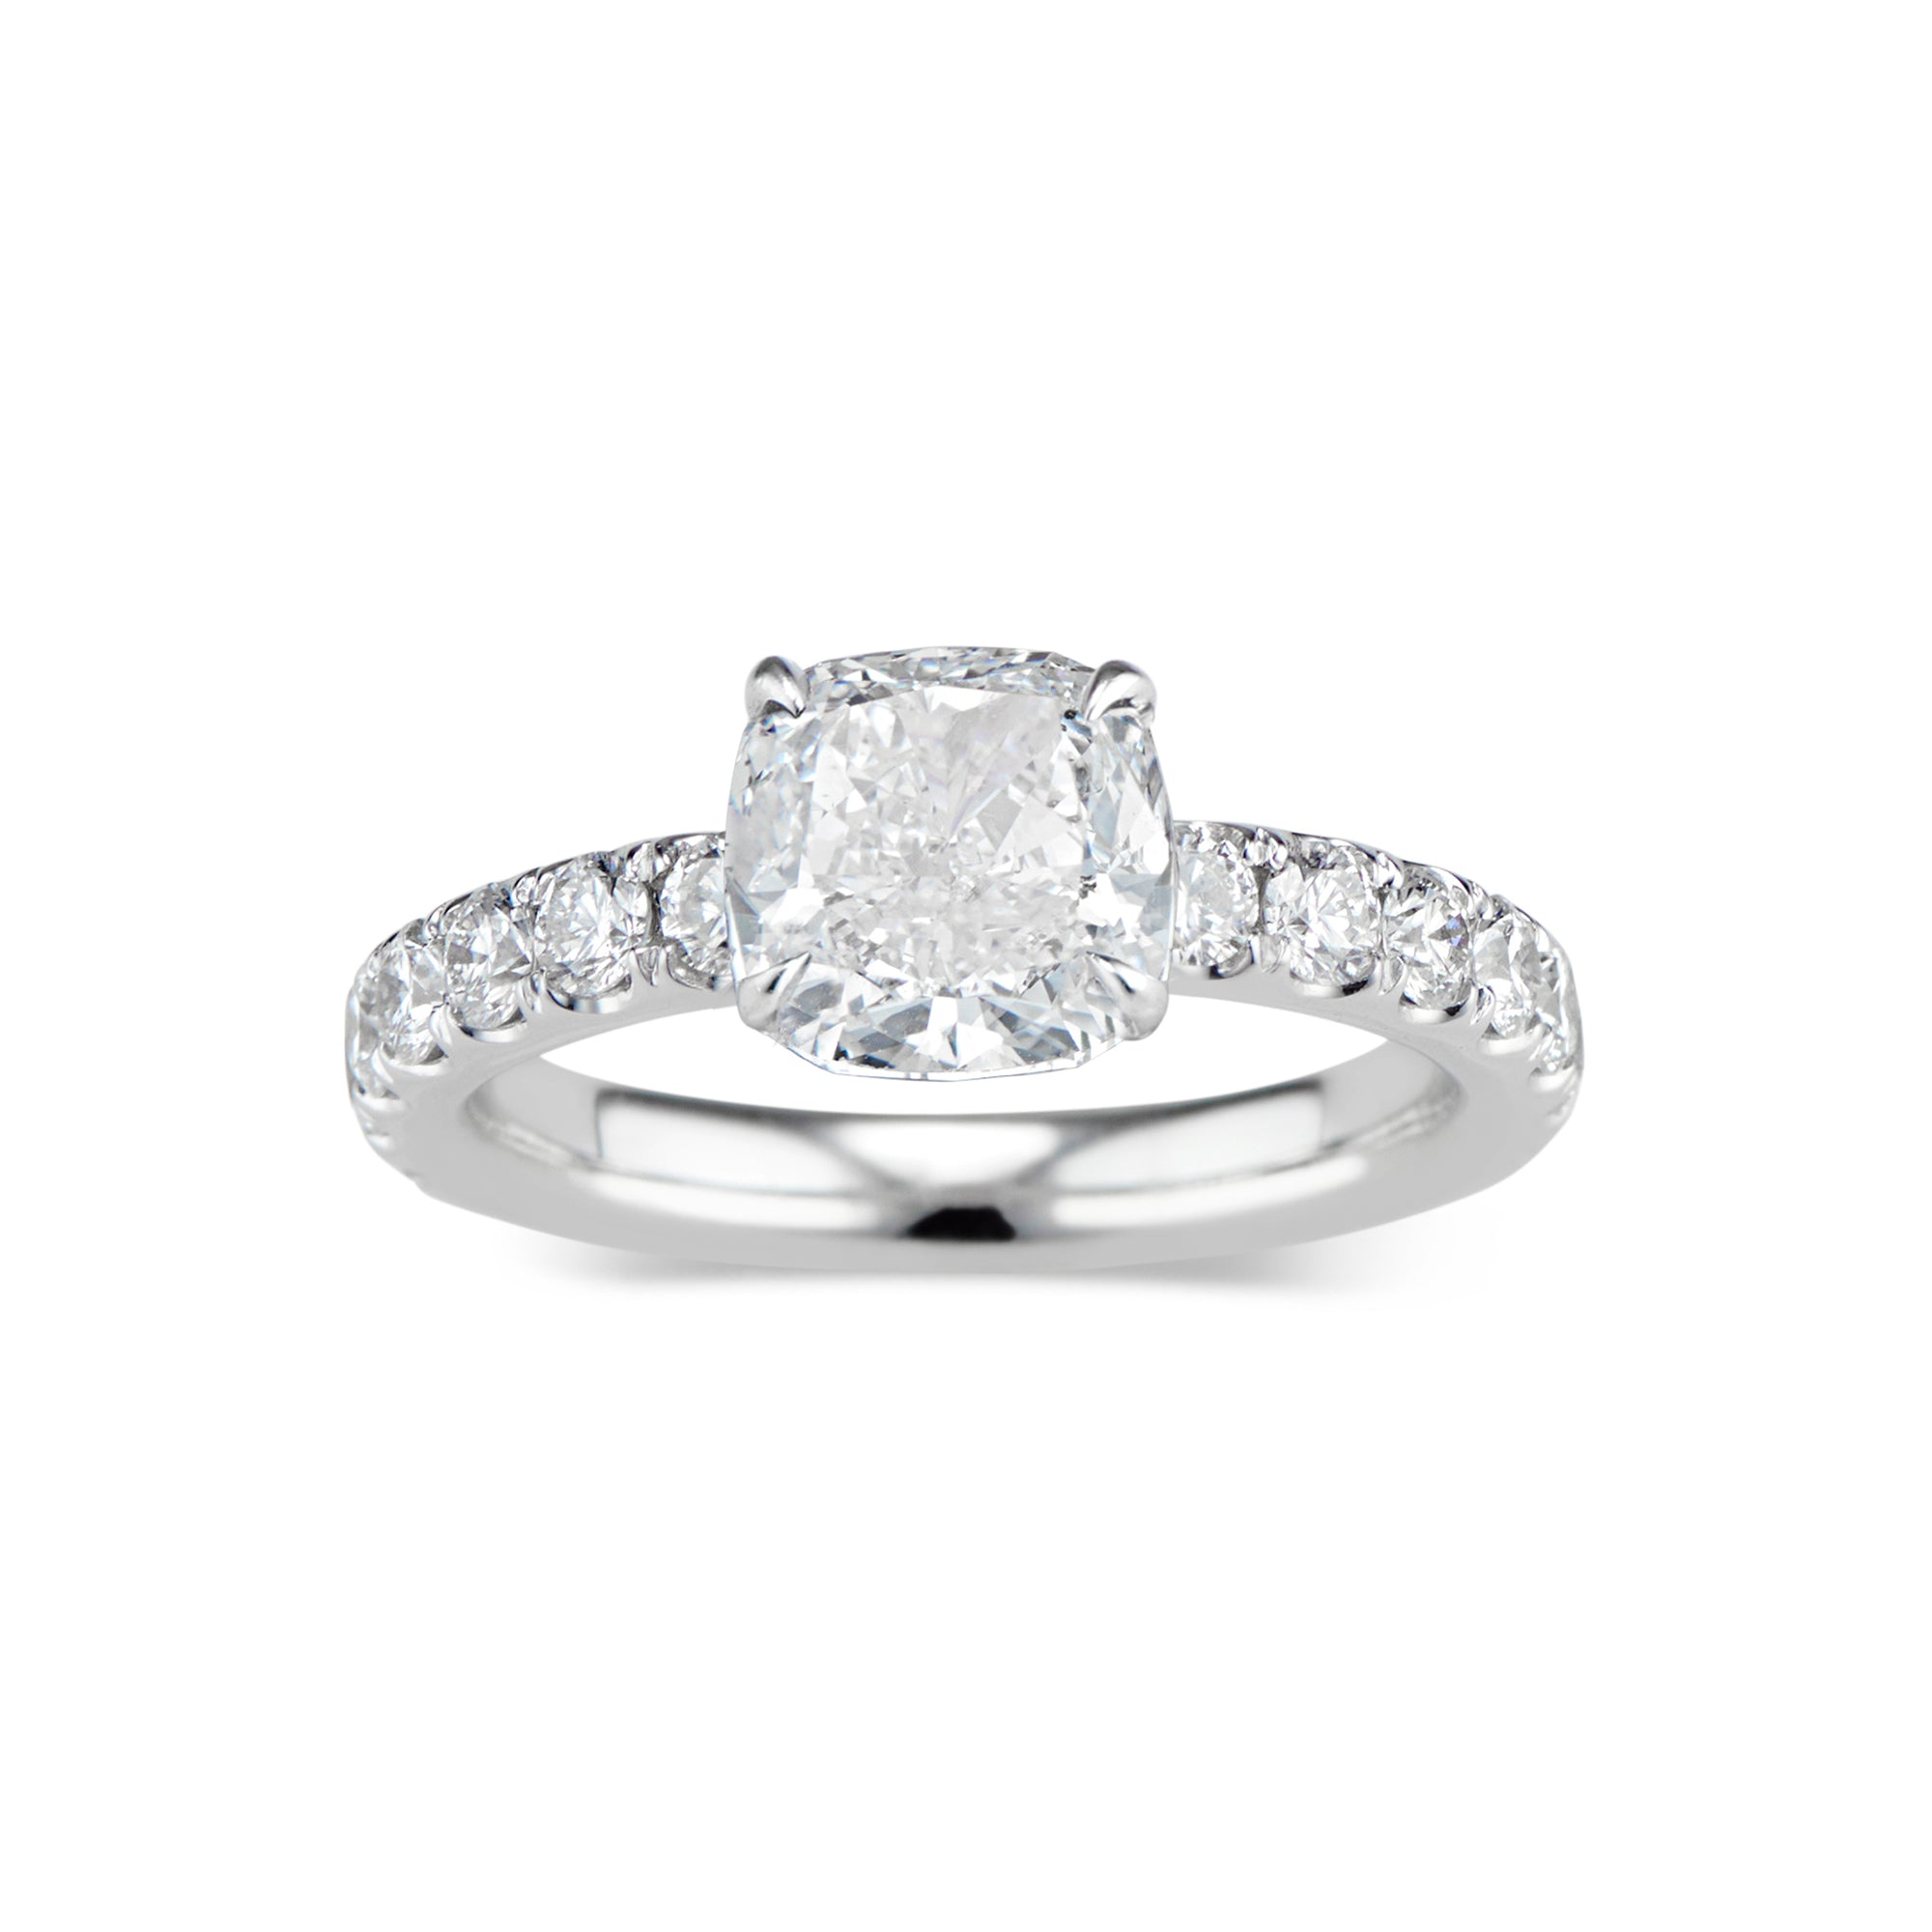 Cushion Diamond Engagement Ring with Diamond Shank